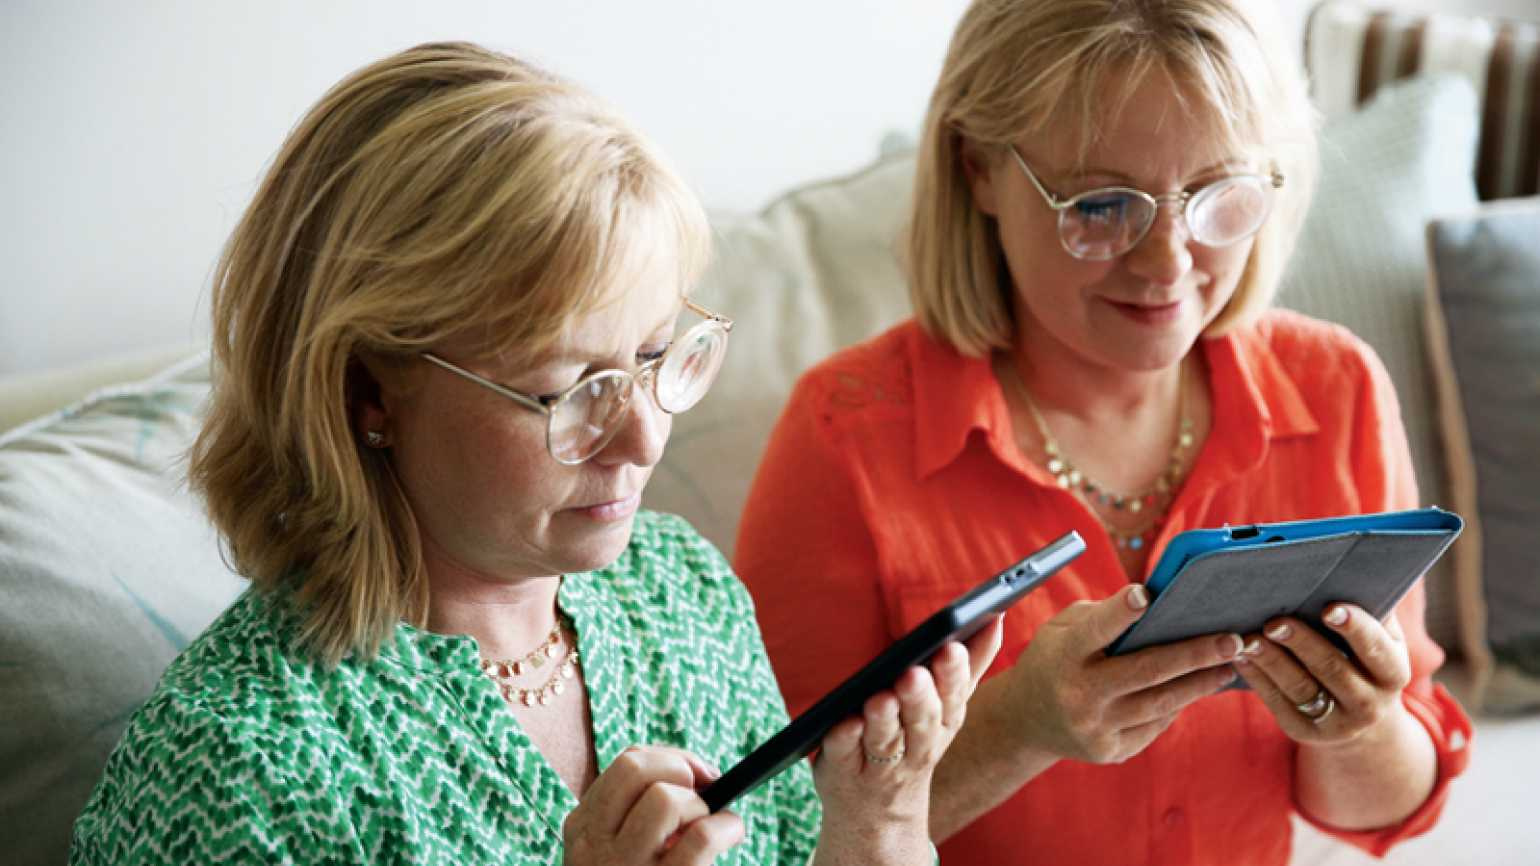 Karen (right) and Sharon in their new glasses, reading from tablets